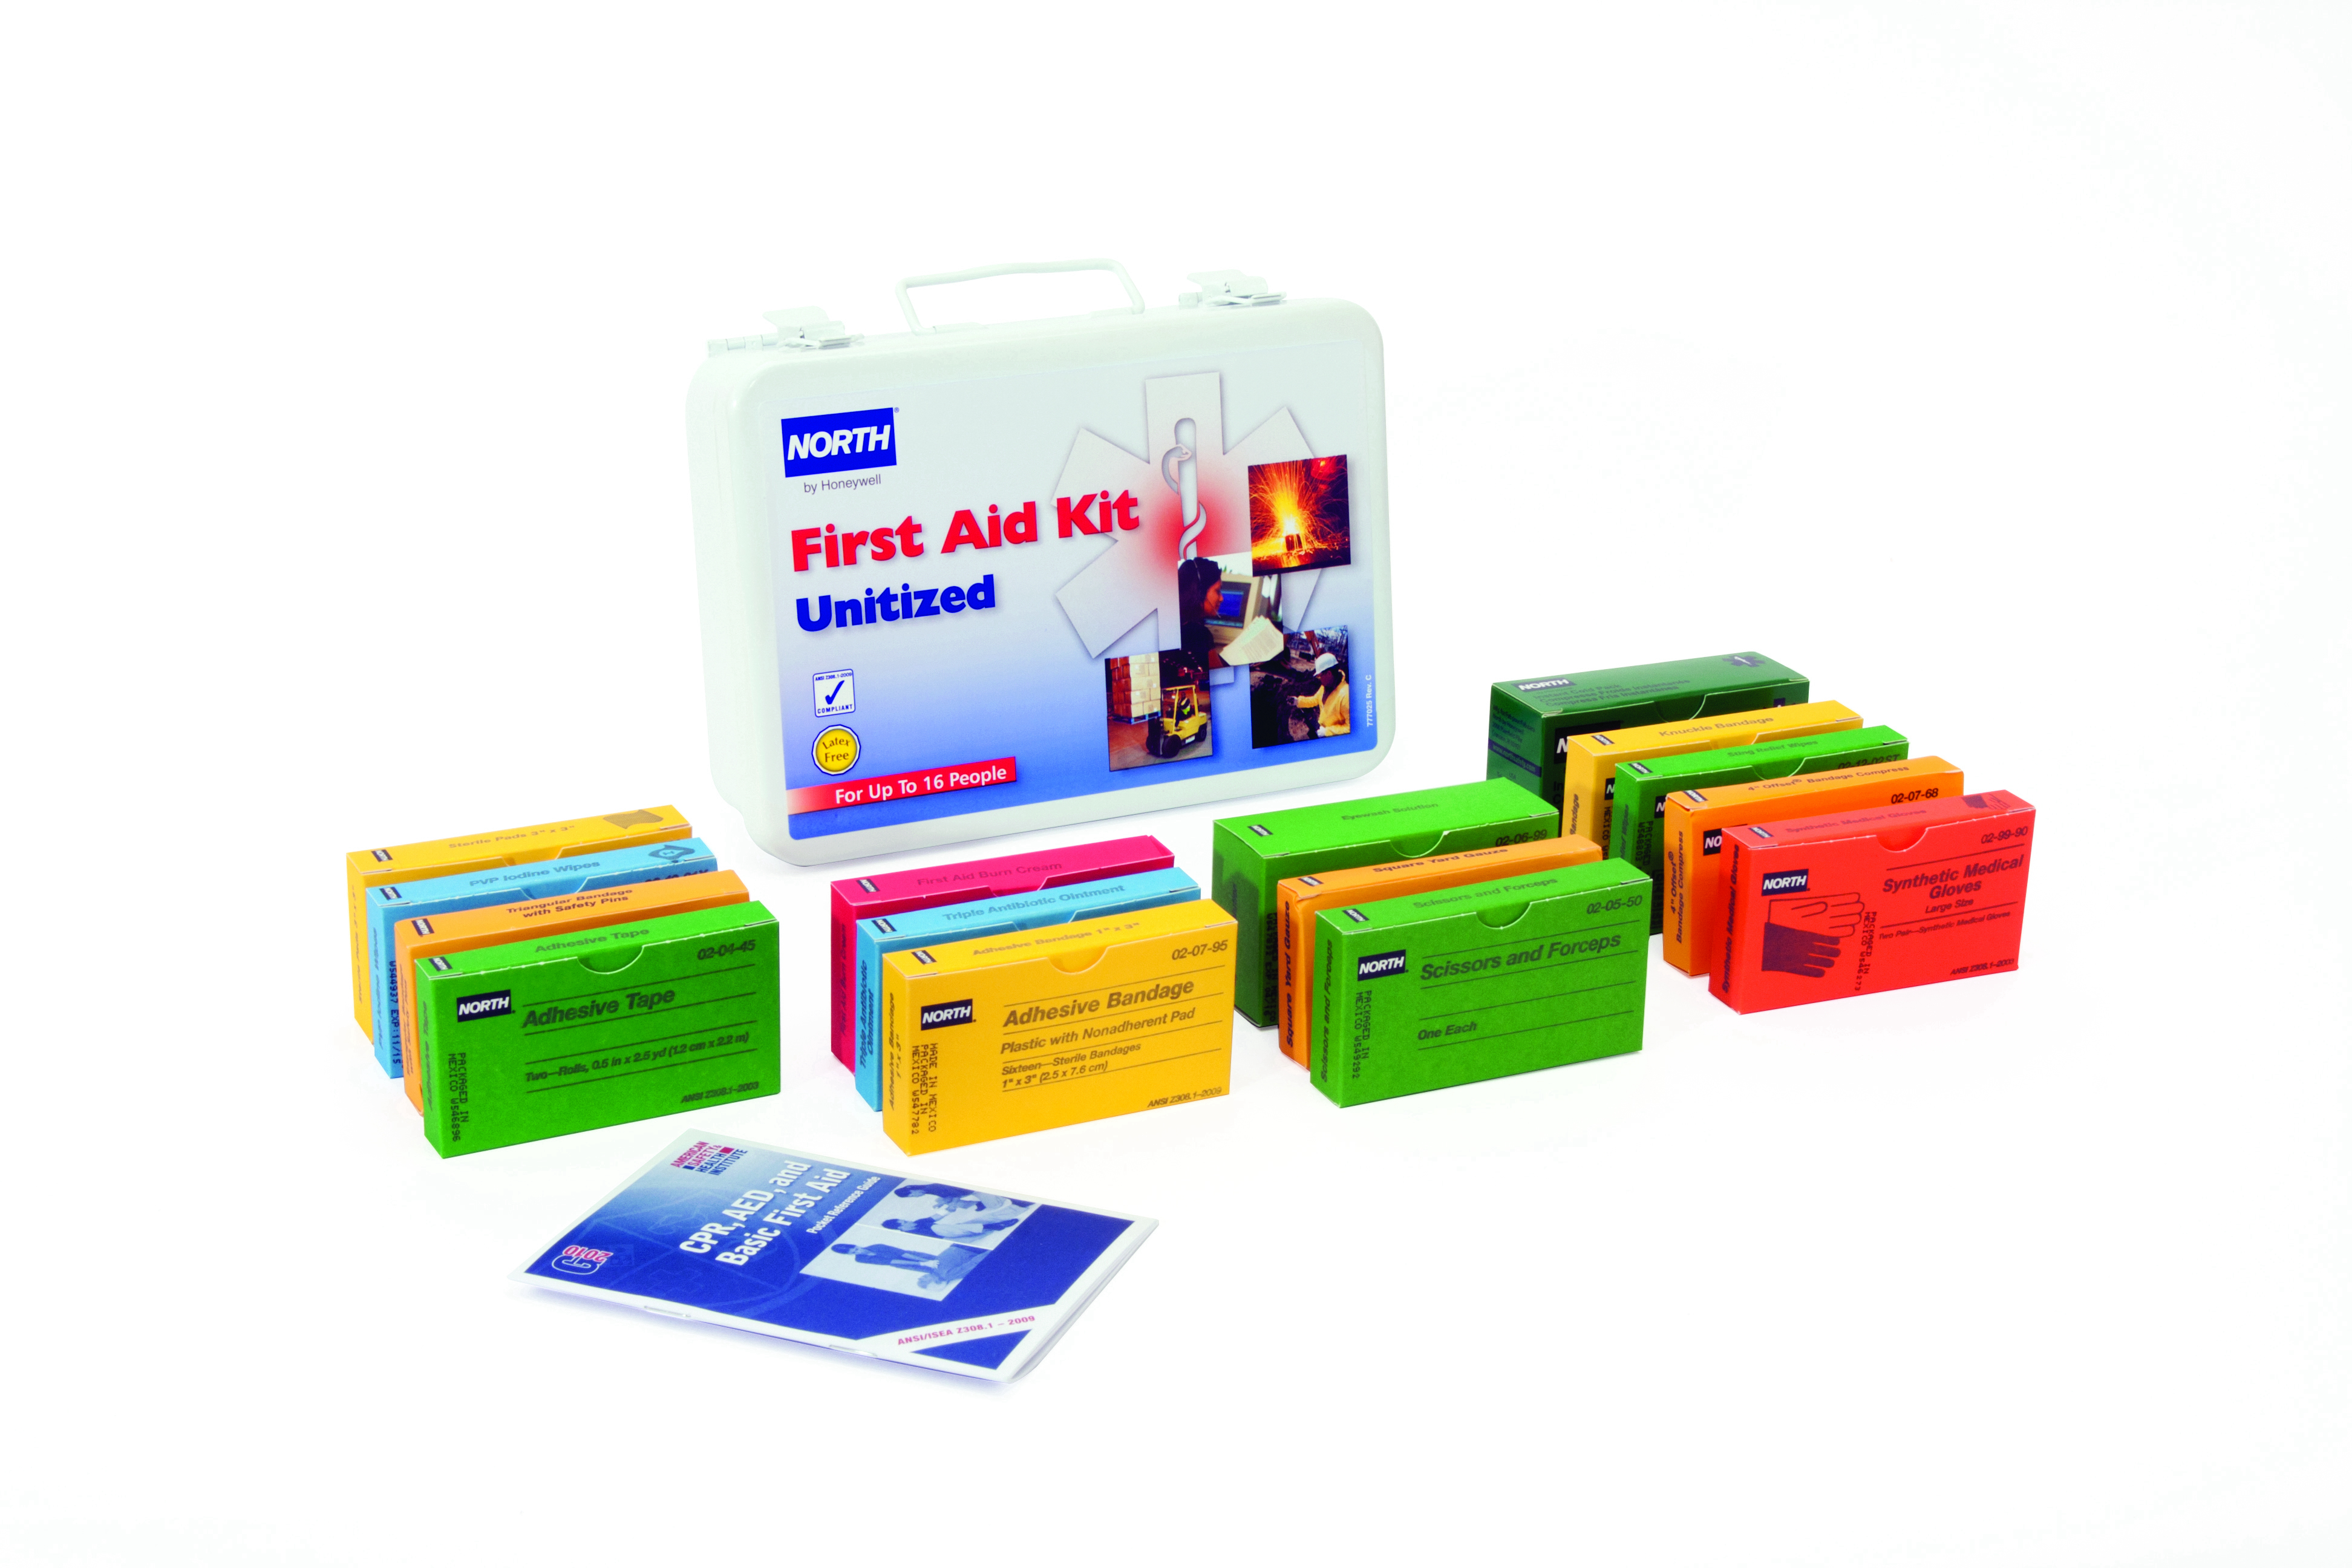 019711-0006L - North Unitized First Aid Kits